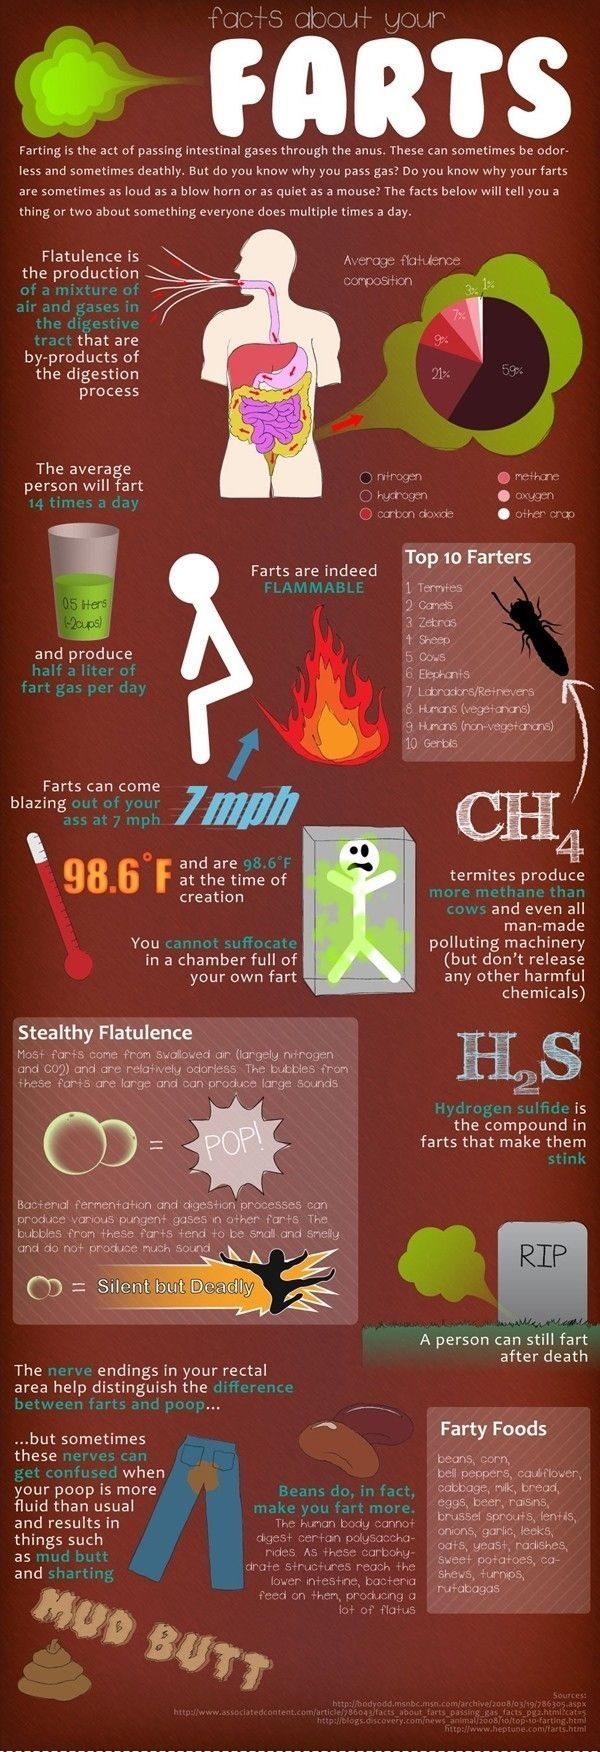 Facts about farts. @Matthew Perry @Brooke Carlyle